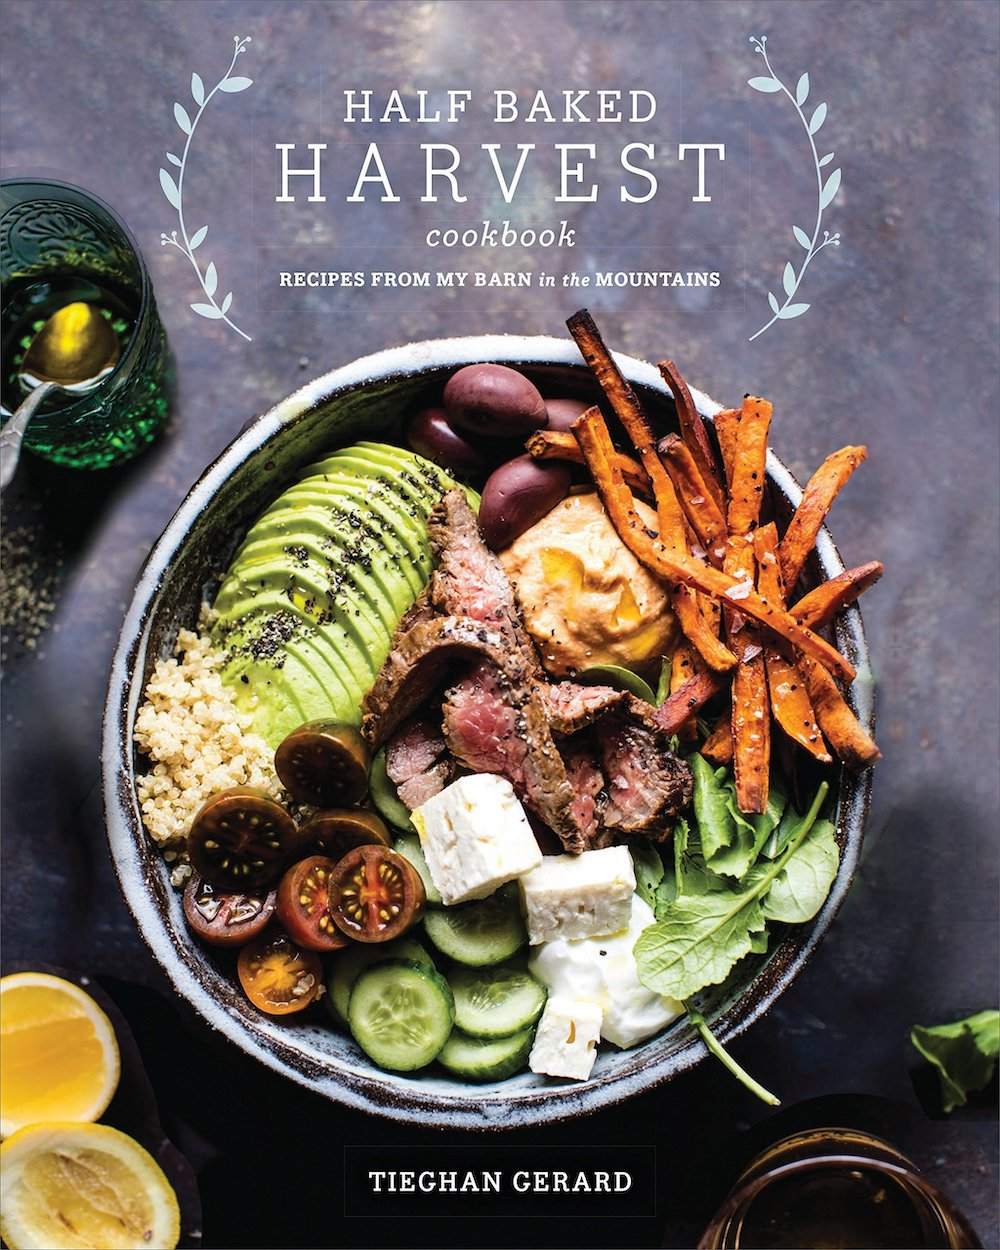 Half Baked Harvest cook book by Tieghan Gerard, cookbook ideas